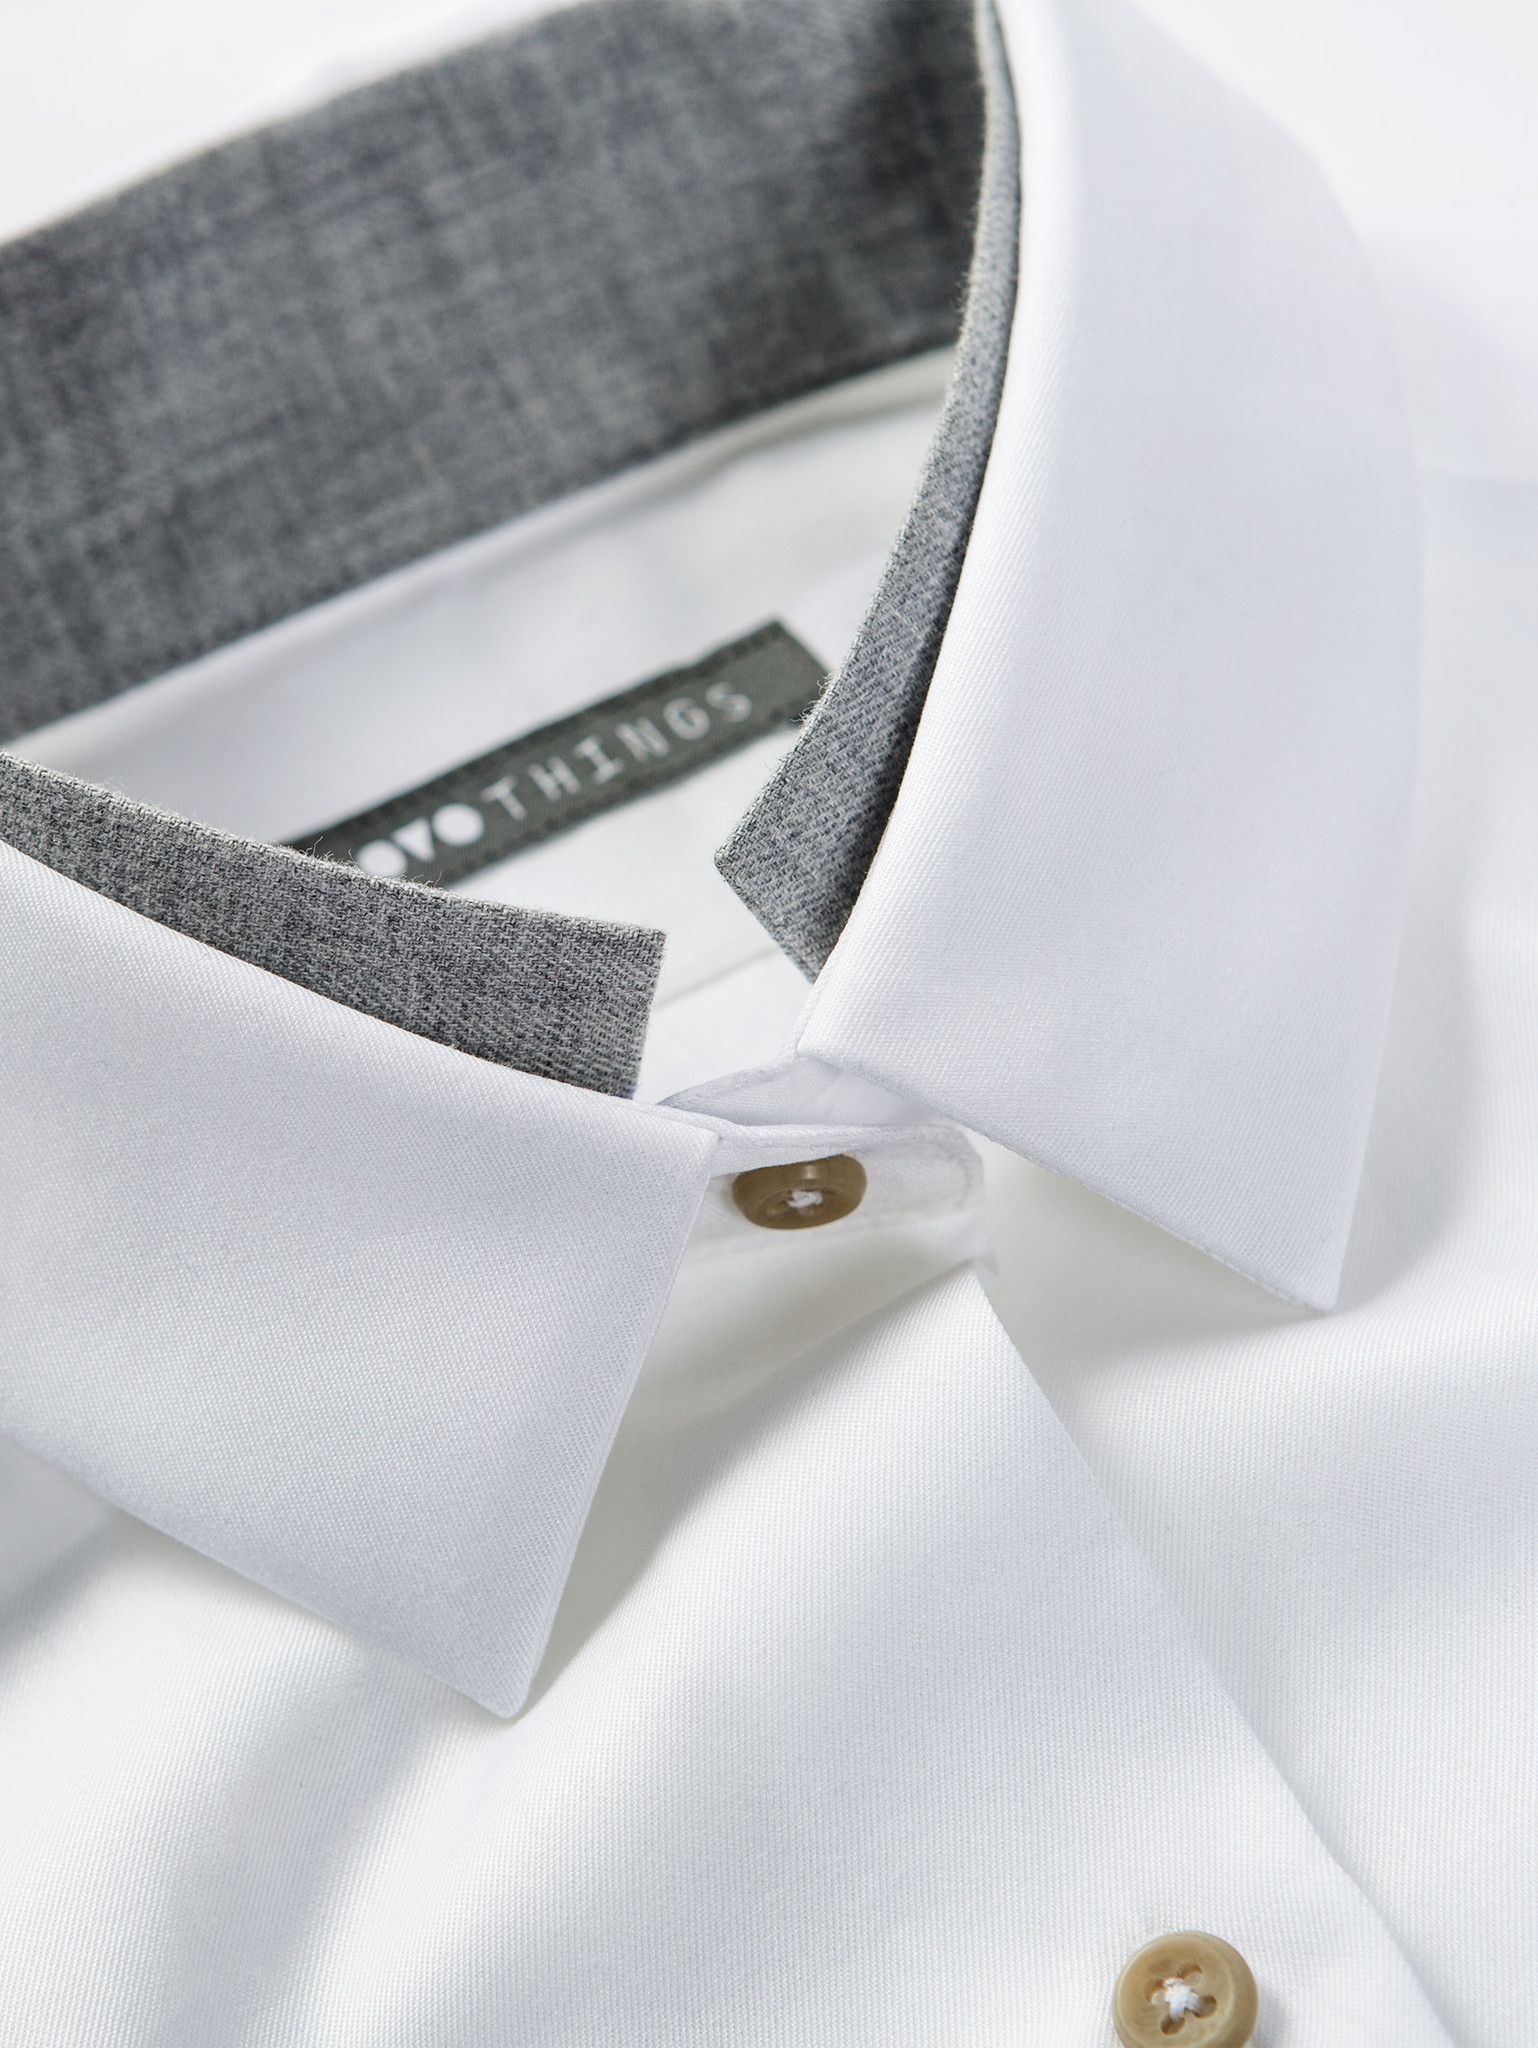 c29c1cd4862 OVO Things Twill Shirt with a unique collar detail as just a hint of  another collar.